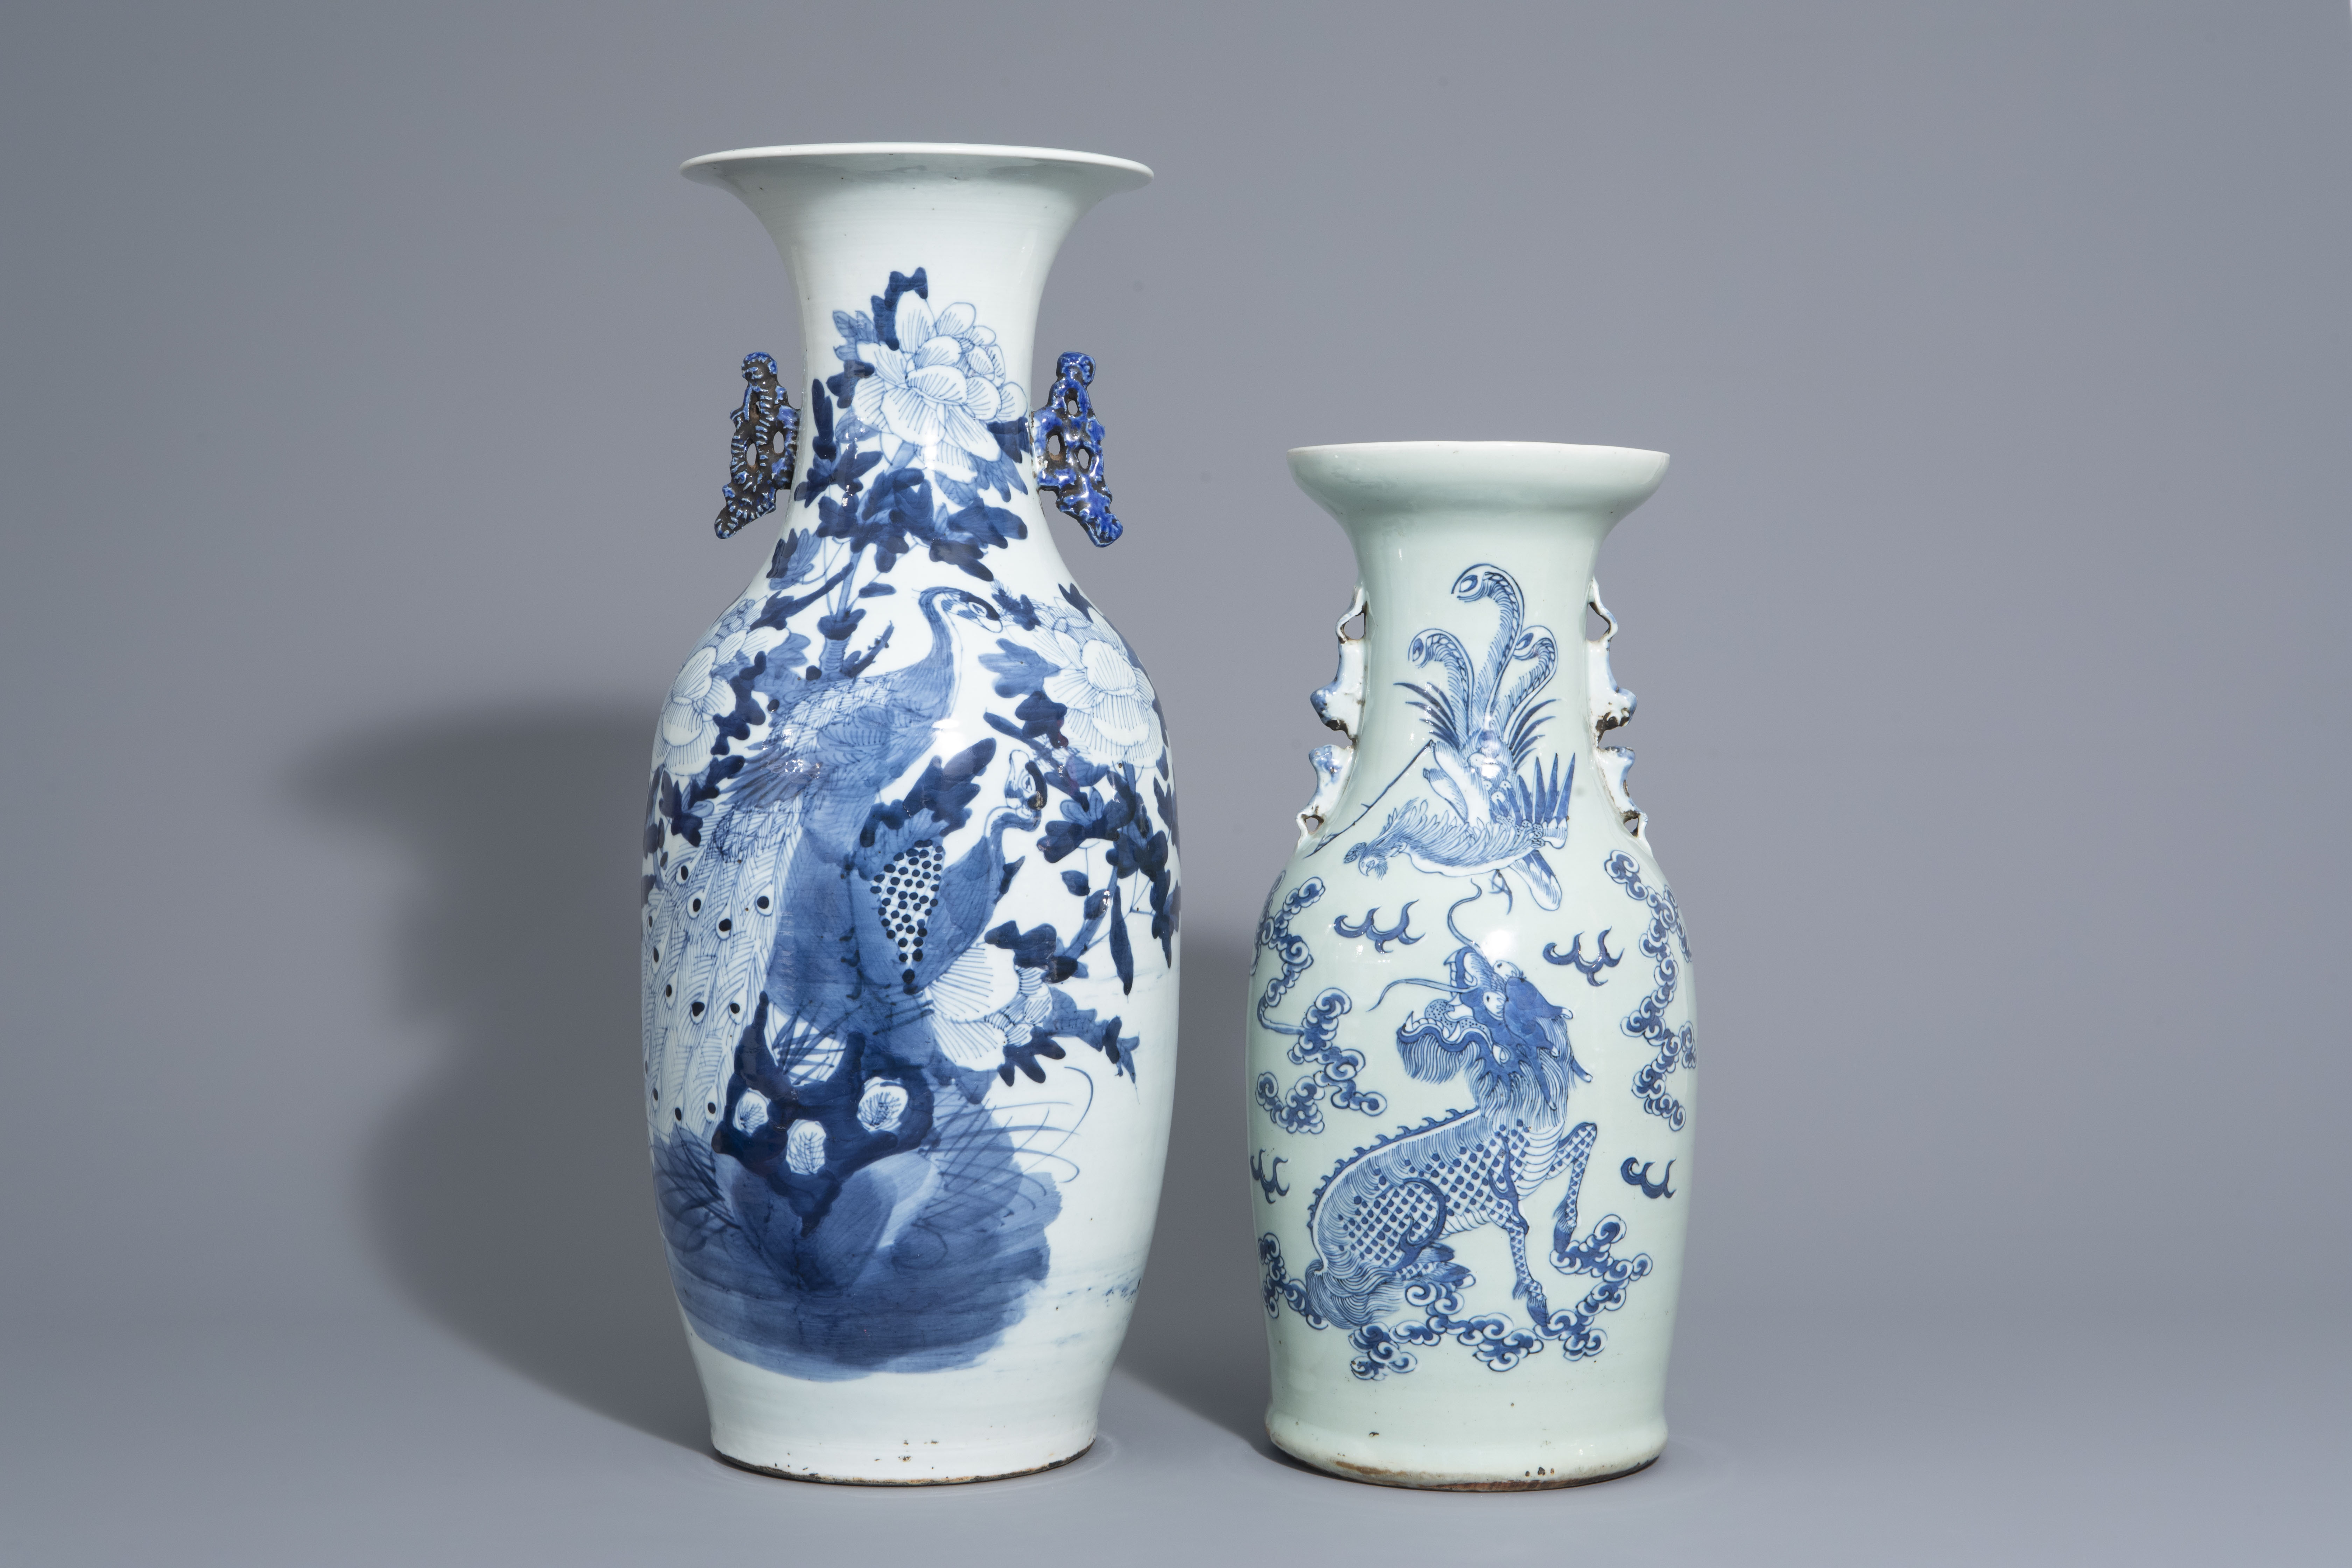 Two Chinese blue and white vases with mythological animals, 19th C. - Image 2 of 7